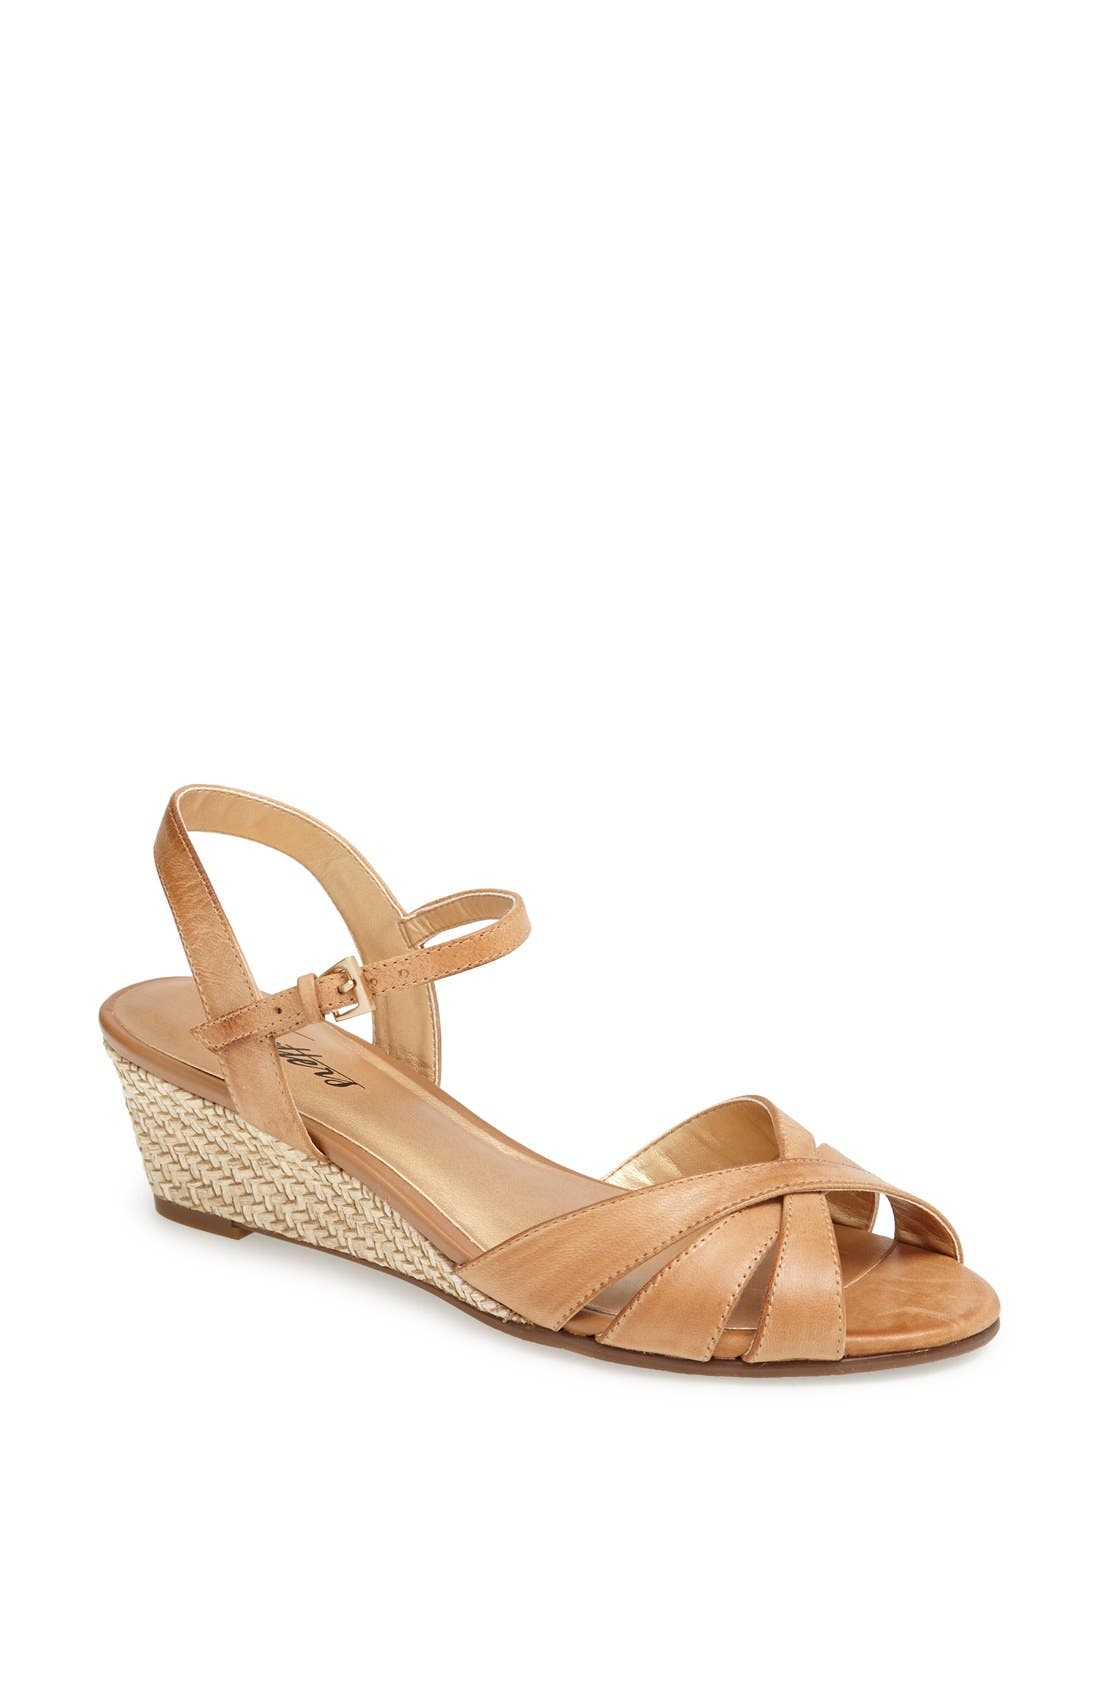 'Mickey' Wedge Sandal,                             Main thumbnail 8, color,